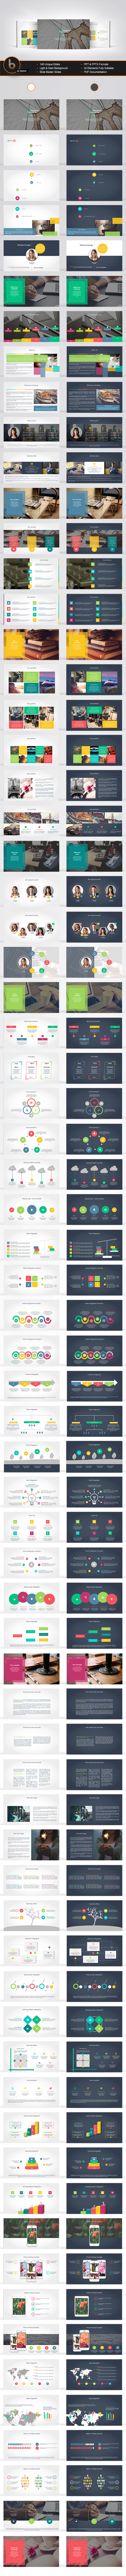 Energy - PowerPoint Presentation Template - Business PowerPoint Templates